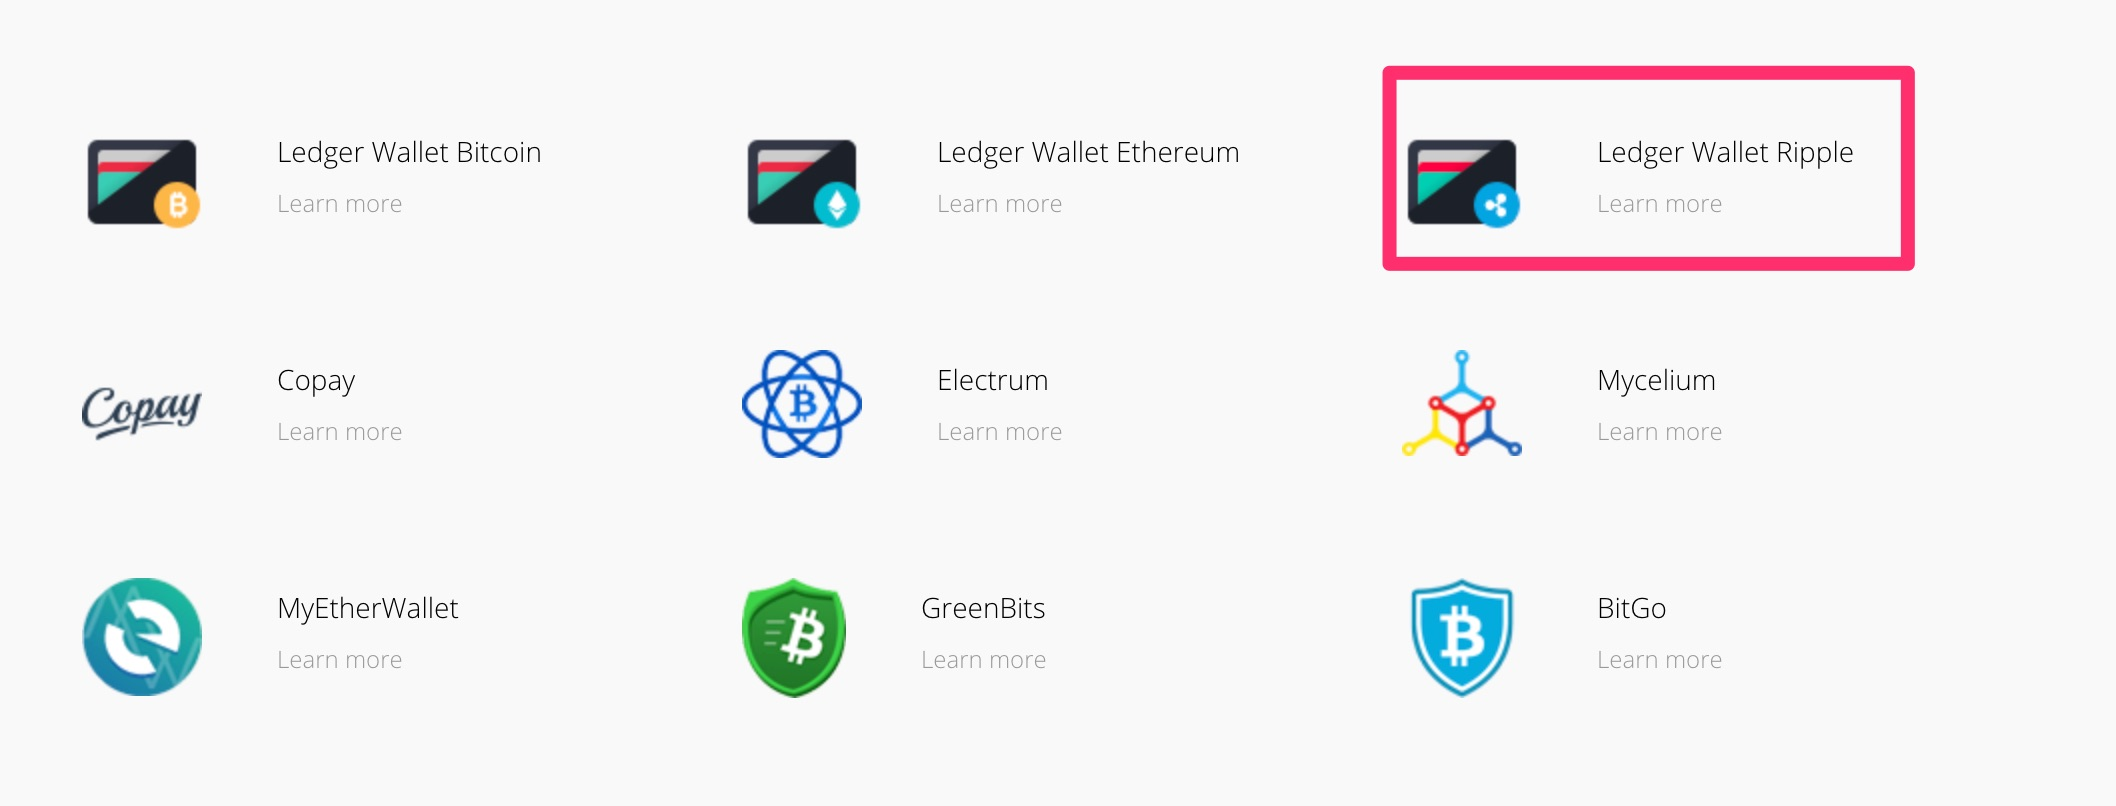 Ledger Wallet Ledger Nano S Cryptocurrency hardware wallet